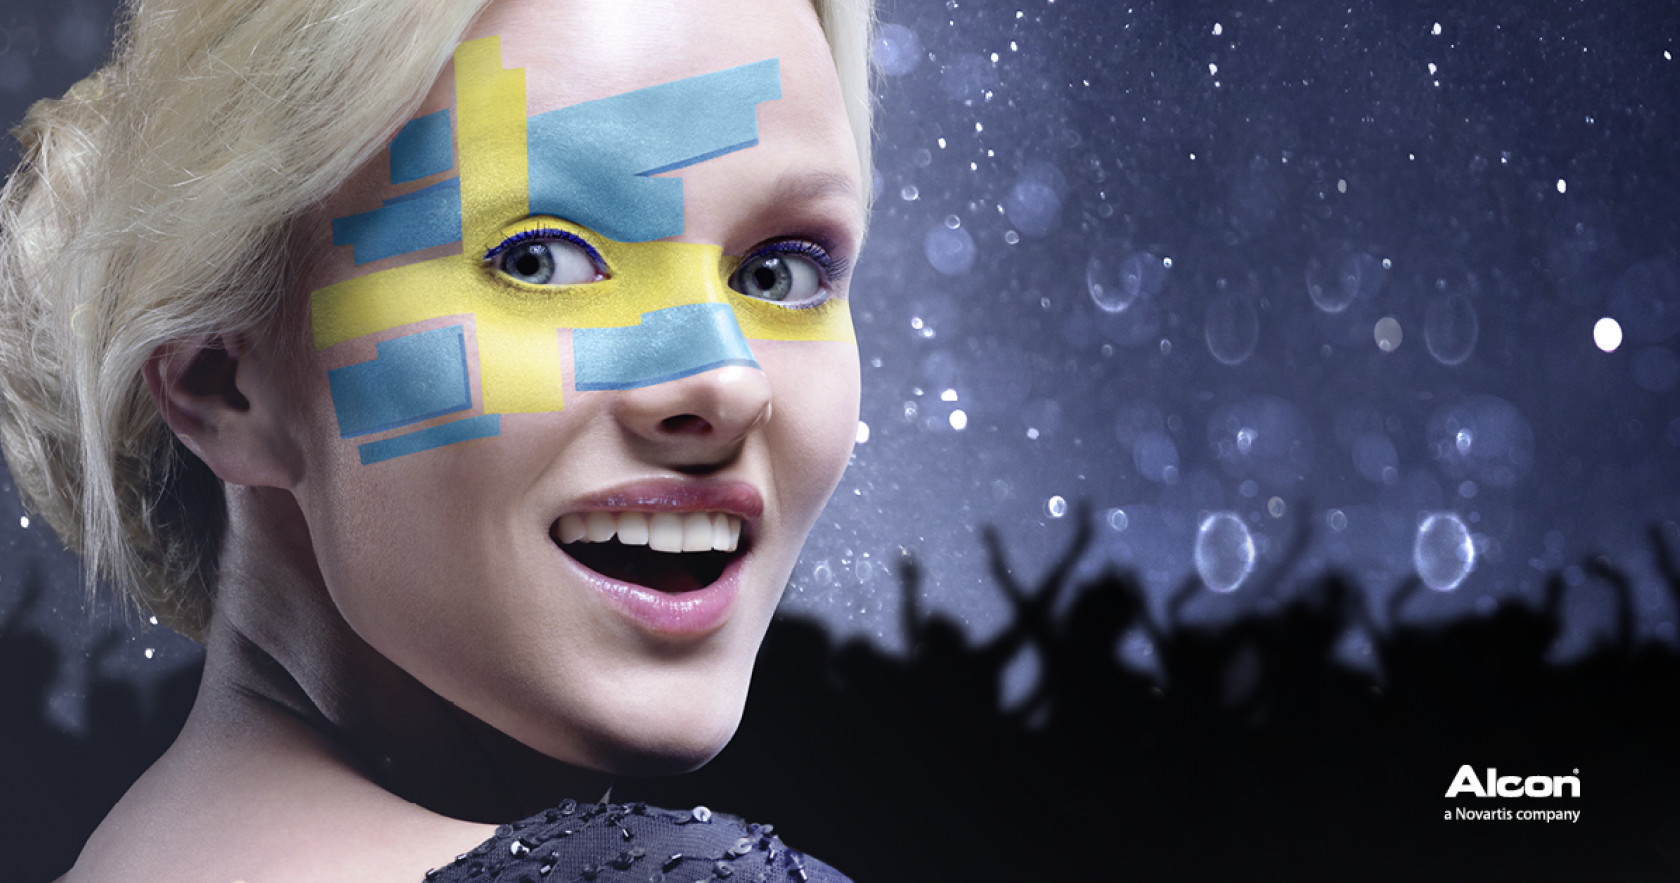 DAILIES® was an Official Partner of the 2014 Eurovision Song Contest